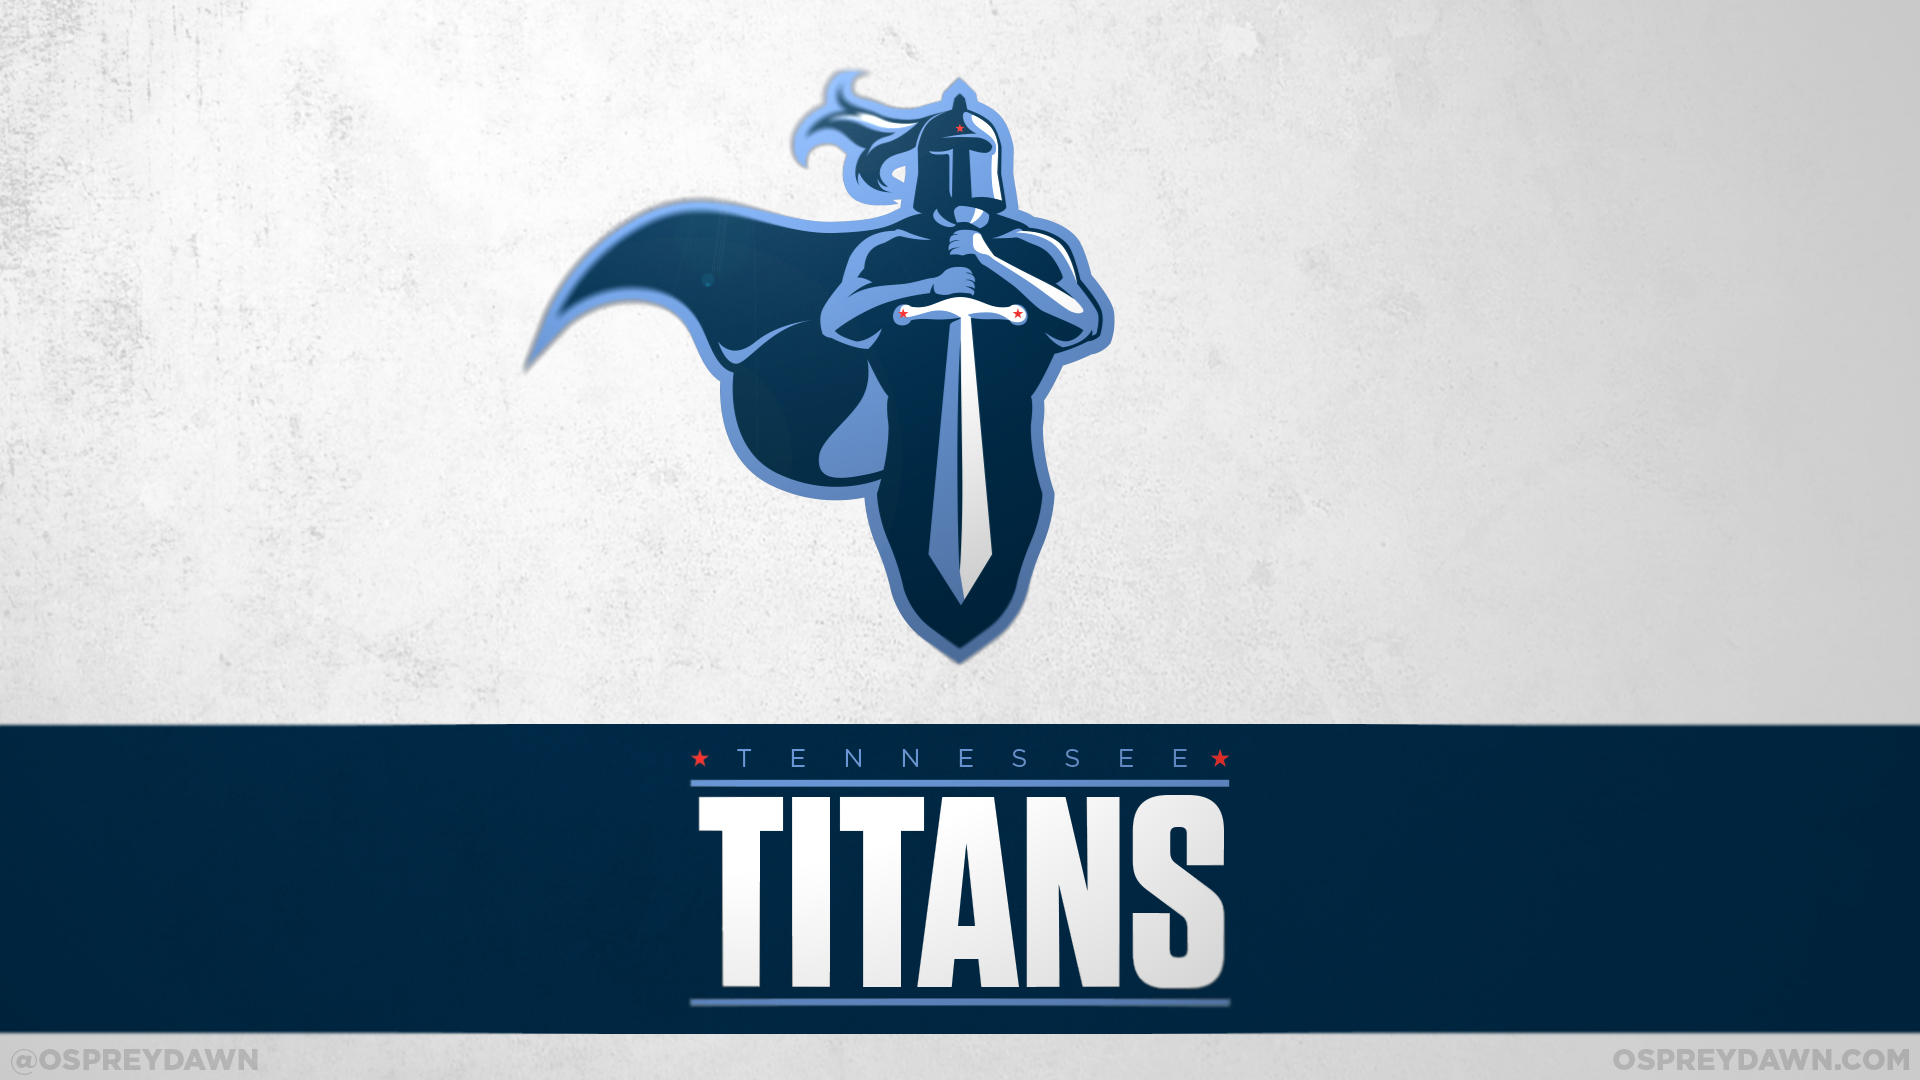 TENNESSEE TITANS Nfl Football U Wallpaper